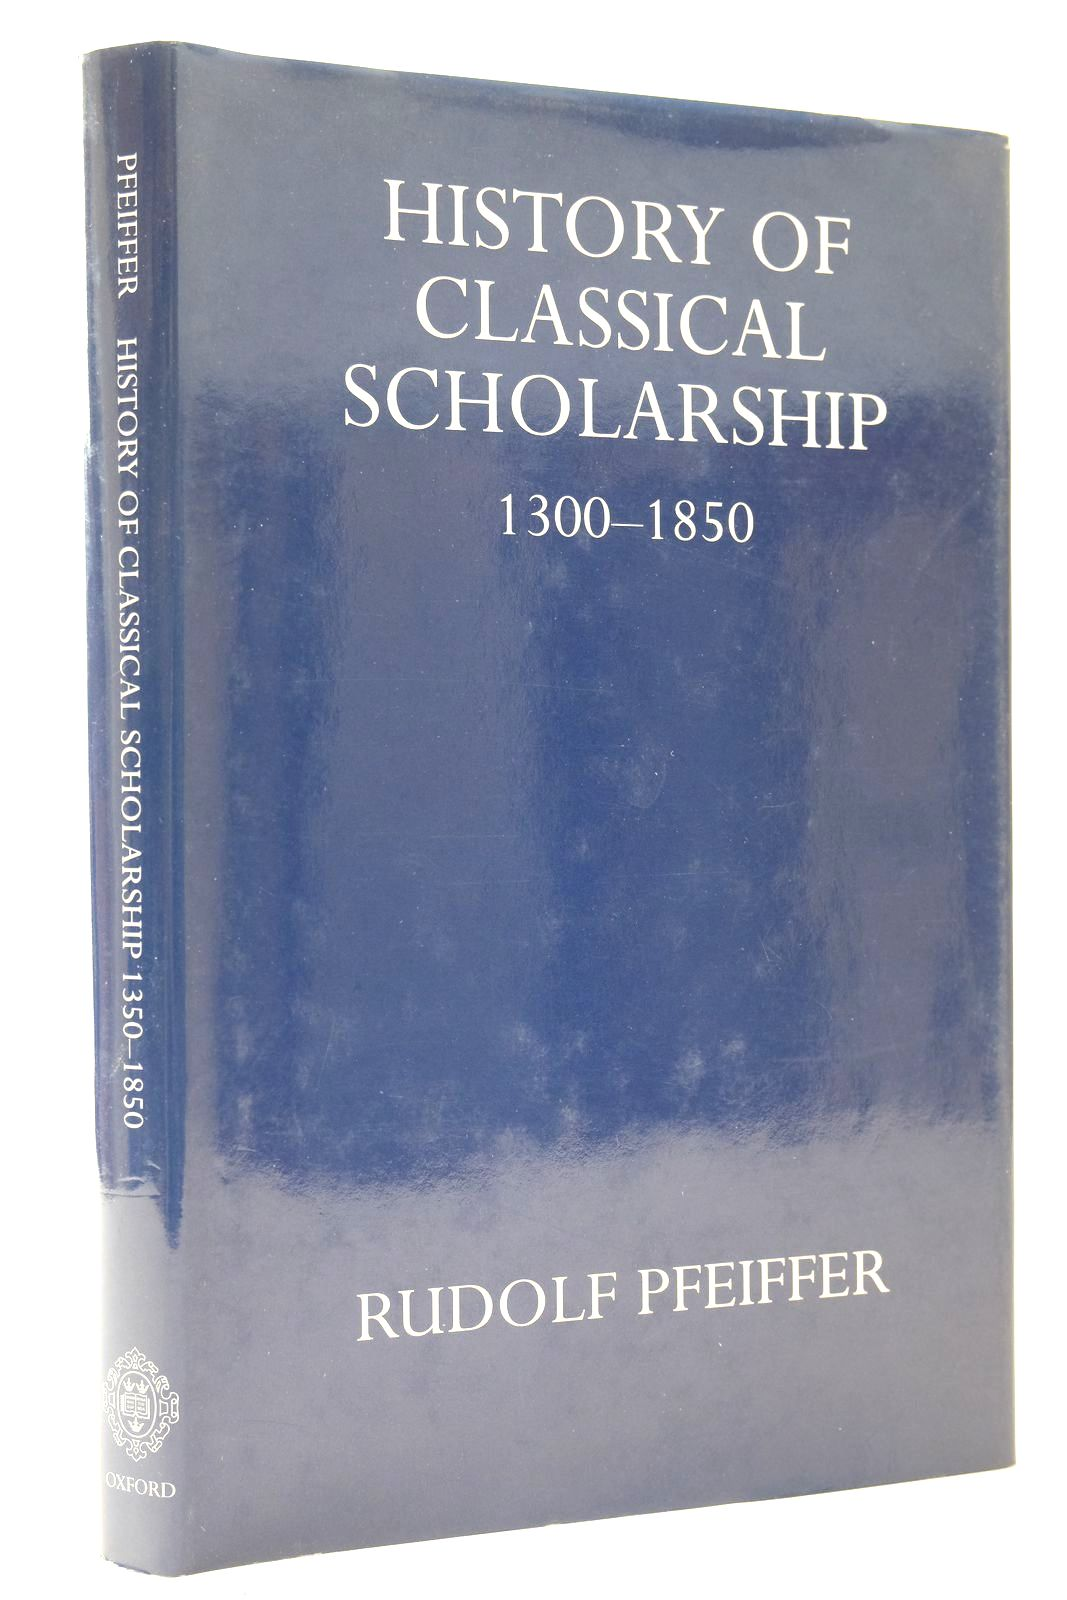 Photo of HISTORY OF CLASSICAL SCHOLARSHIP FROM 1300 TO 1850- Stock Number: 2132509